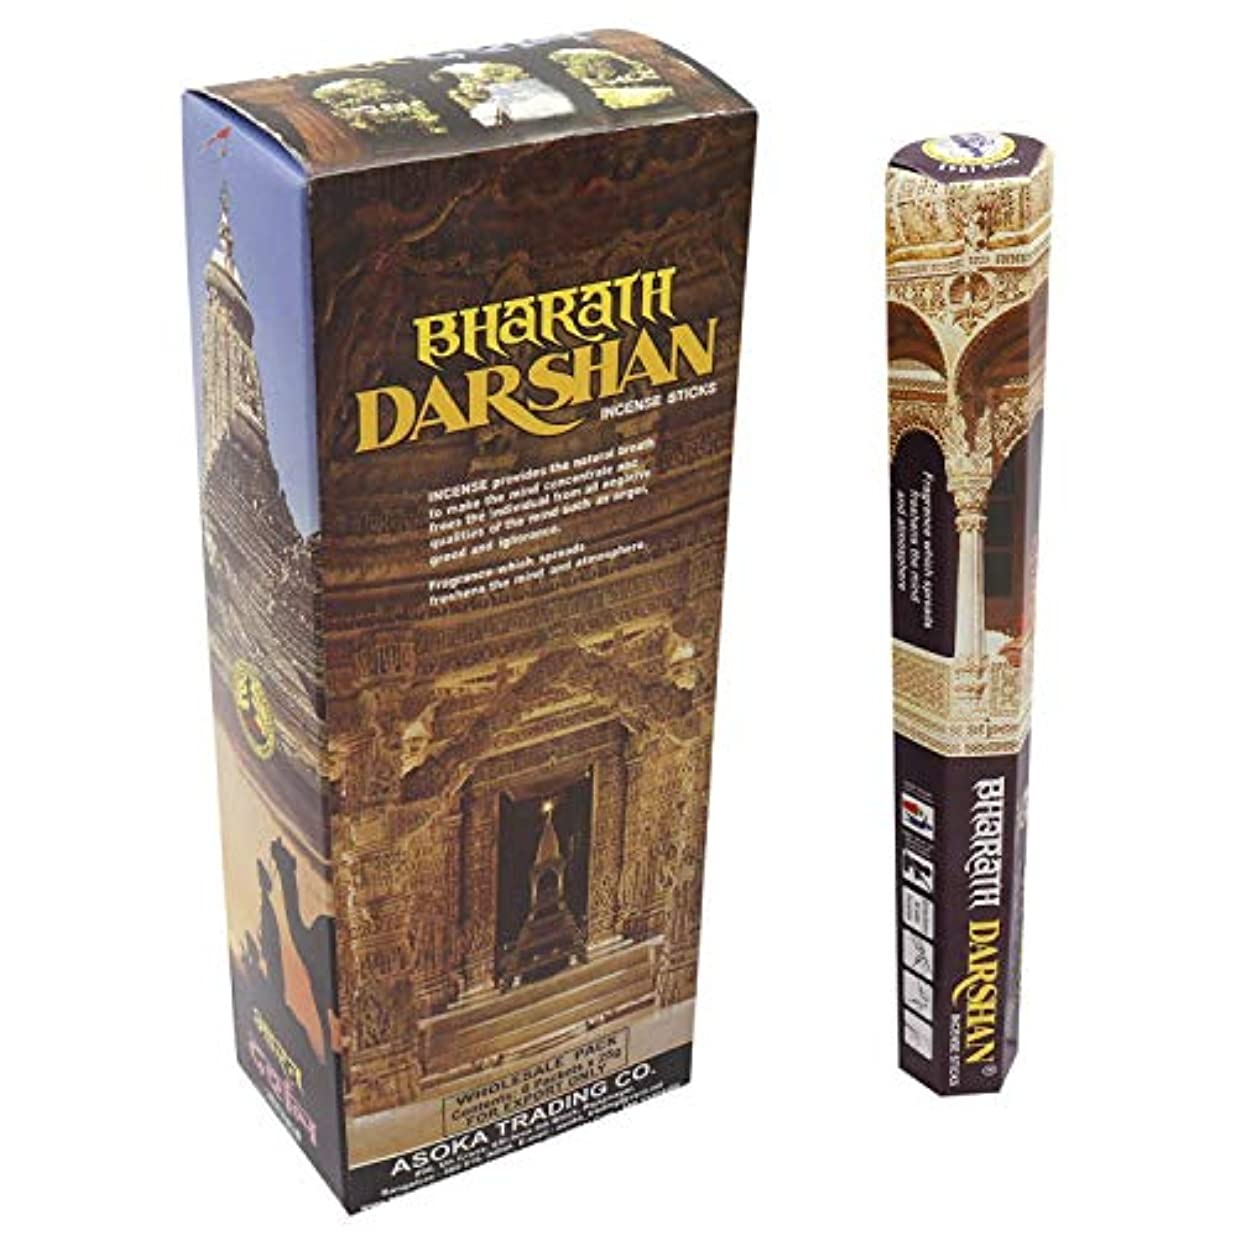 泥沼ファイアルパワーBharat Darshan 6 pkt of 18 Sticks Each (Contains 108 Incense Sticks/Natural Agarbatti) with Free Wooden Incense/agarbatti Stand with Brass Work. | Export Quality